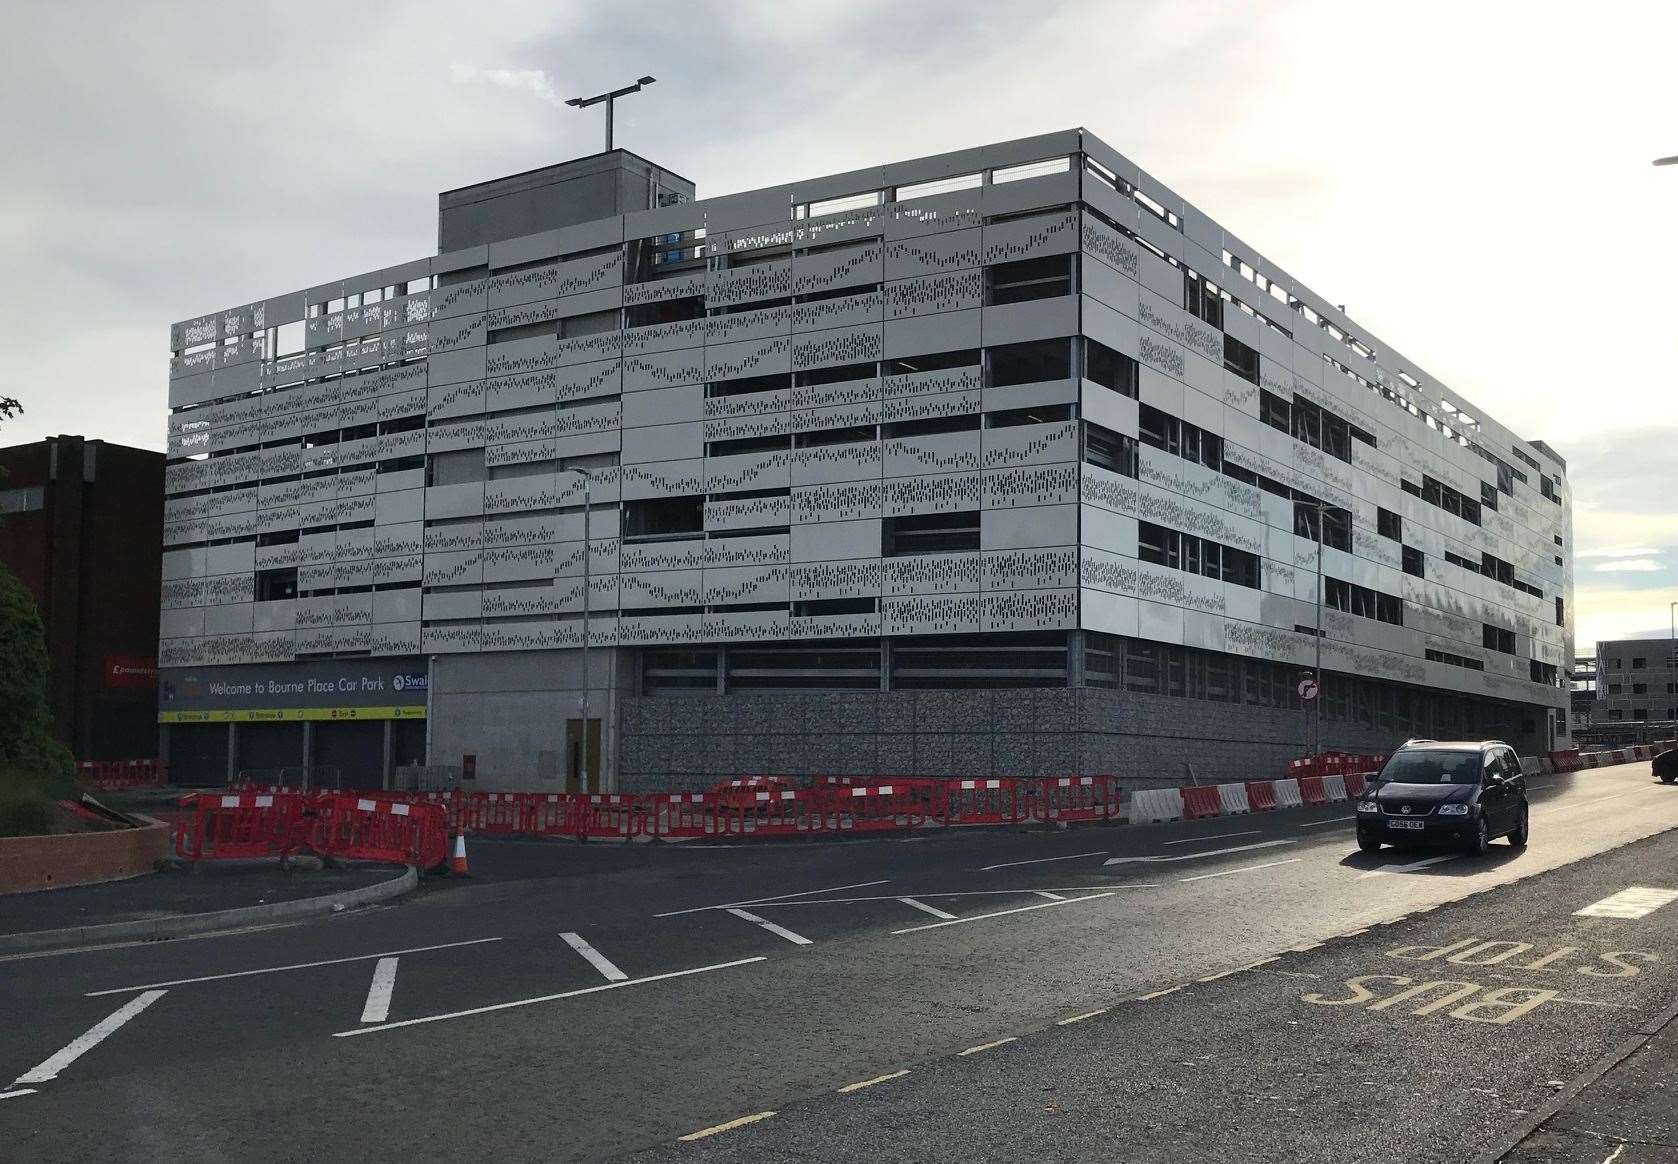 The multi-storey car park is set to open in summer